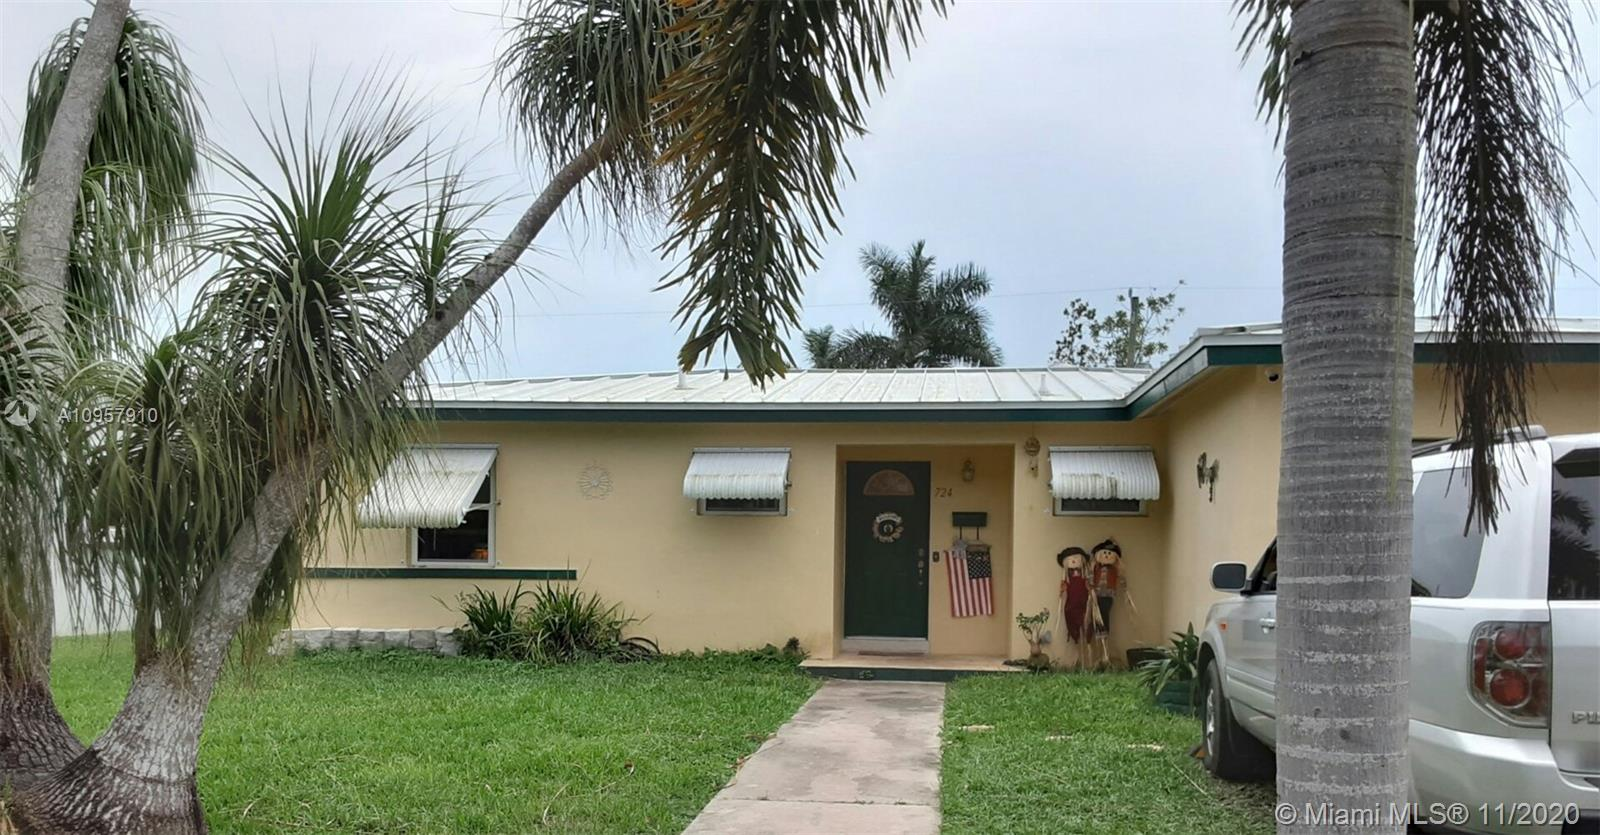 Reduced 3 Bedroom 2 bath 1354 sq ft incl. a 1/1 in law has side ddoo. New kitchen with stainless steel appliances. Terrazzo floors. Metal roof installed 2018. Chain link fenced large backyard with tall Cherry hegde, & fruit bearing mature trees: Hog Plum (Ciruela), Lime, and Sour Sop (Guanavana) shed.  Excellent neighborhood with 2 parks within walking distance. Close to Campbell Drive, Krome, Wells Fargo bank,  *Possible seller contribution for buyer's closing costs.